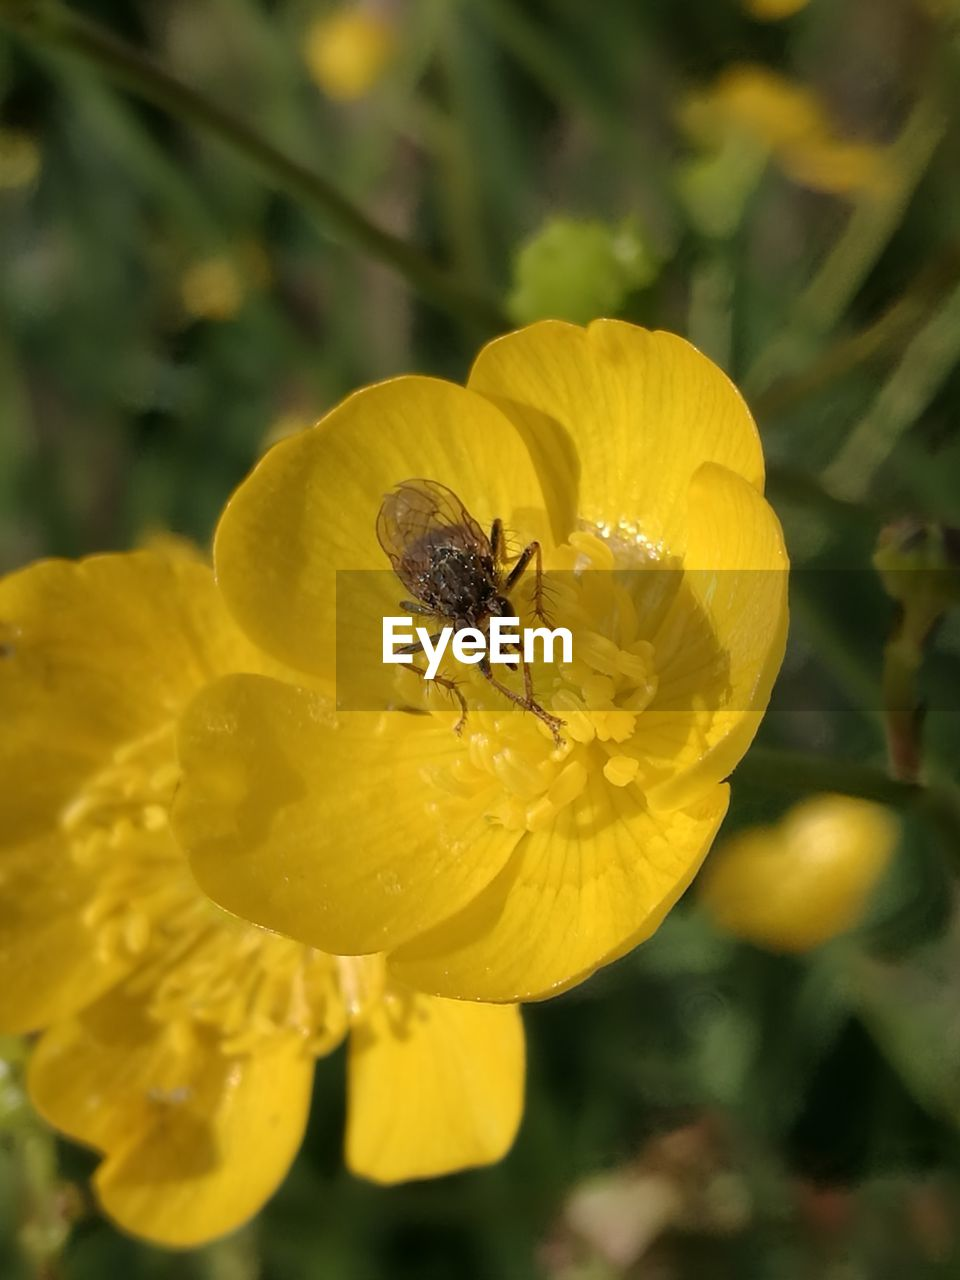 flower, insect, yellow, growth, nature, petal, one animal, plant, animals in the wild, fragility, animal themes, outdoors, freshness, beauty in nature, no people, focus on foreground, day, close-up, animal wildlife, flower head, bee, pollination